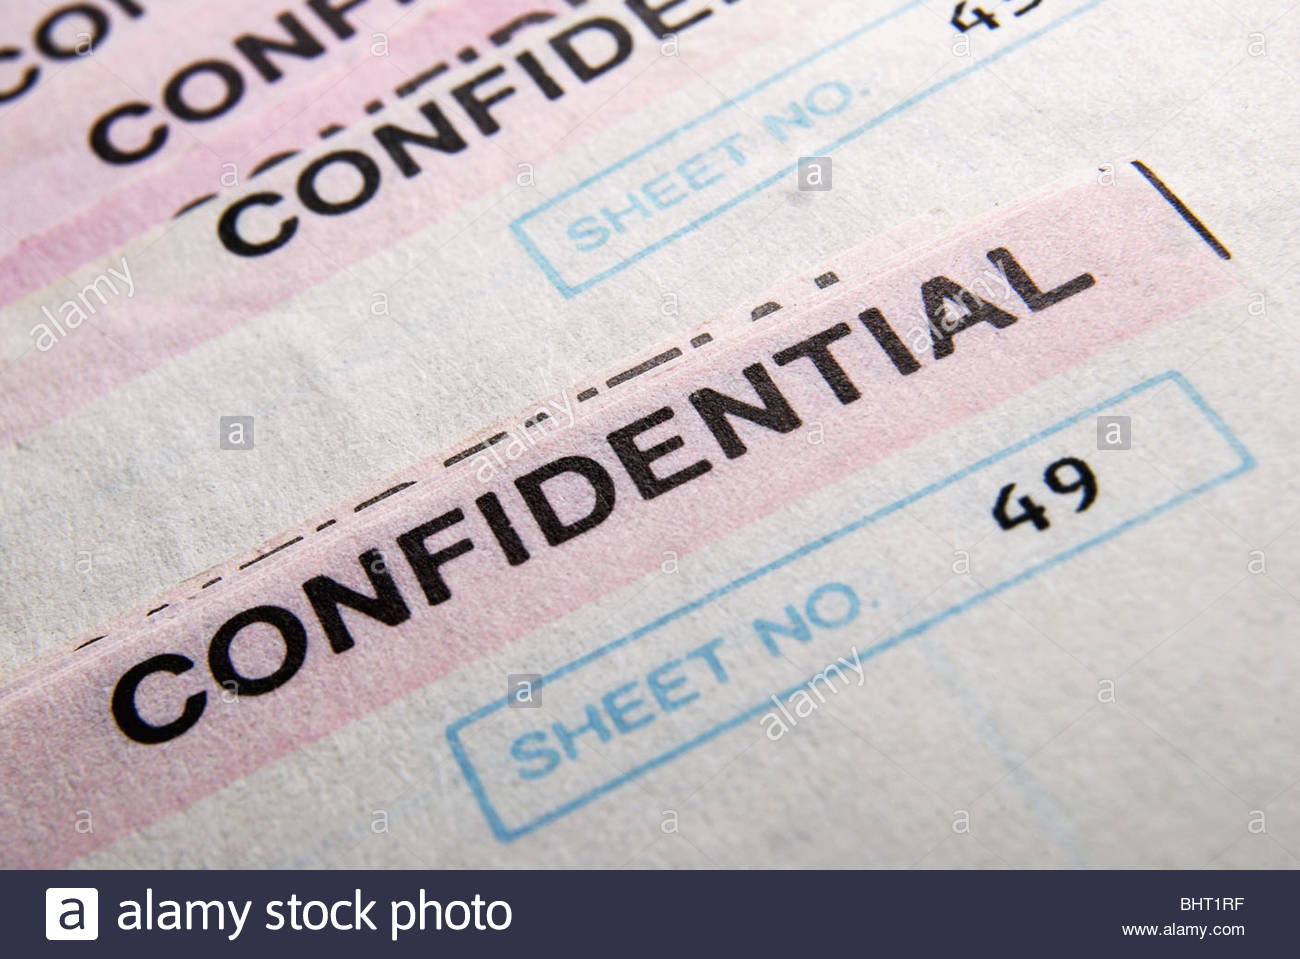 UK bank statements 'Confidential' - Stock Image